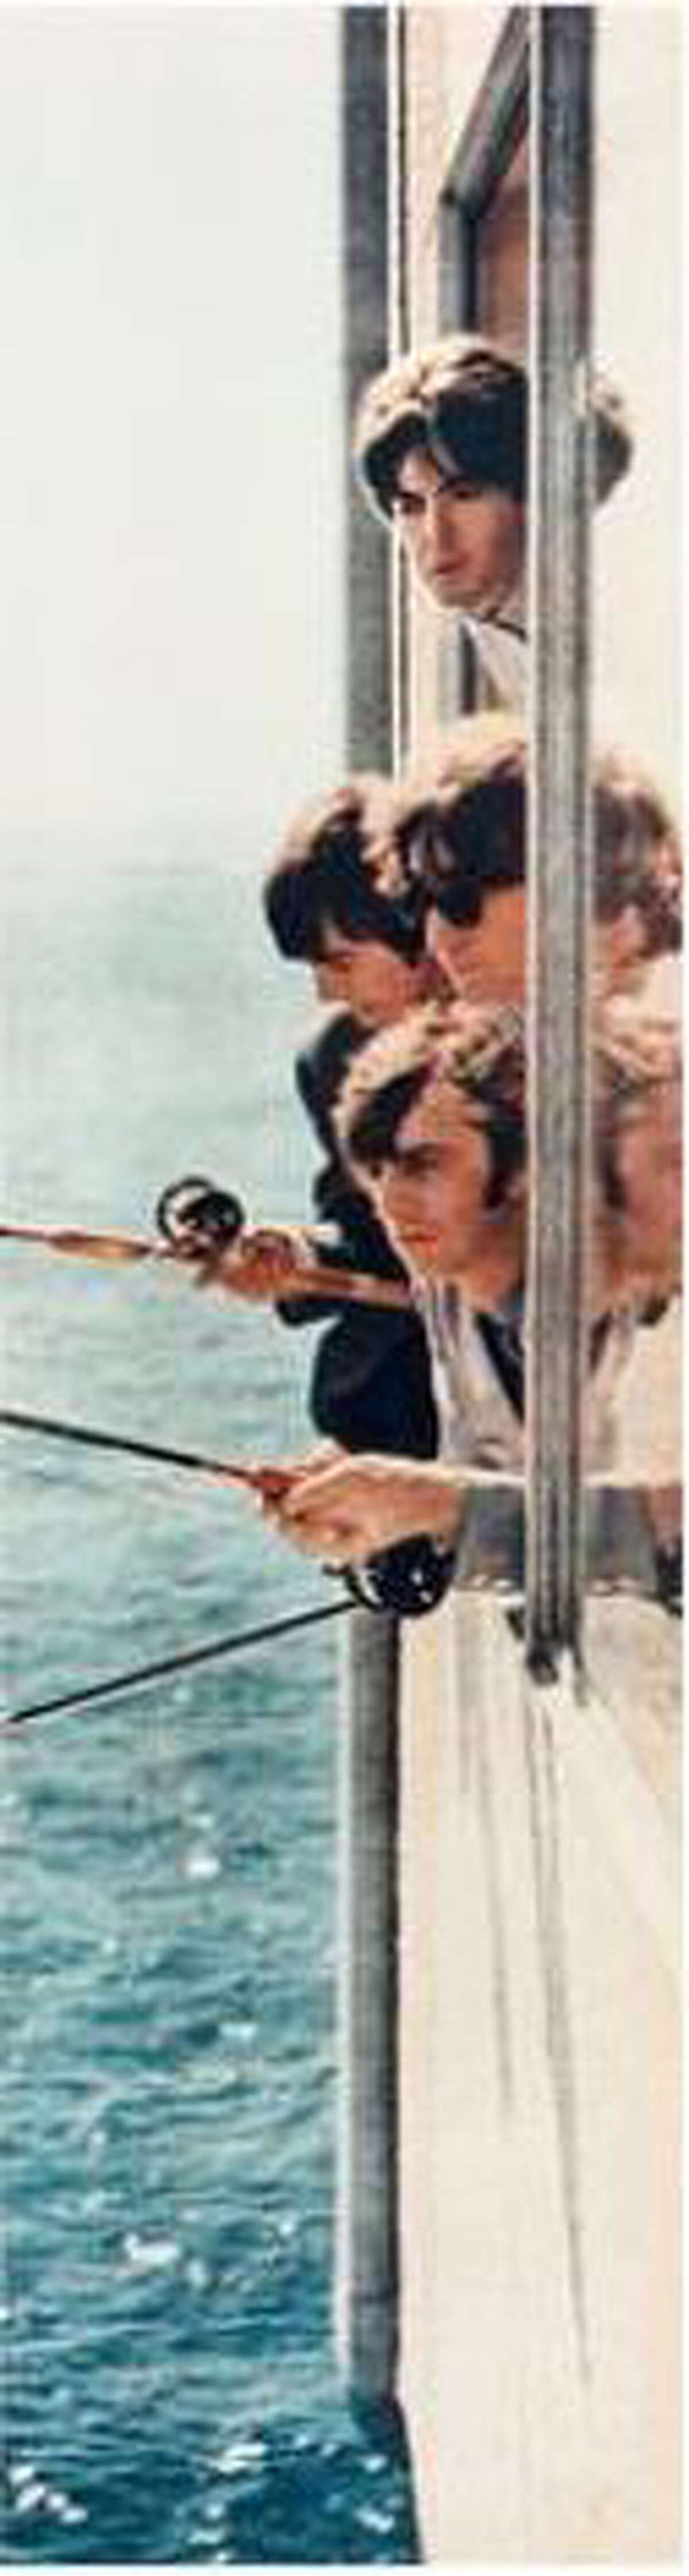 The Beatles fishing from a window in suite 272 at the Edgewater Hotel, Aug. 21, 1964. (Courtesy Edgewater Inn)